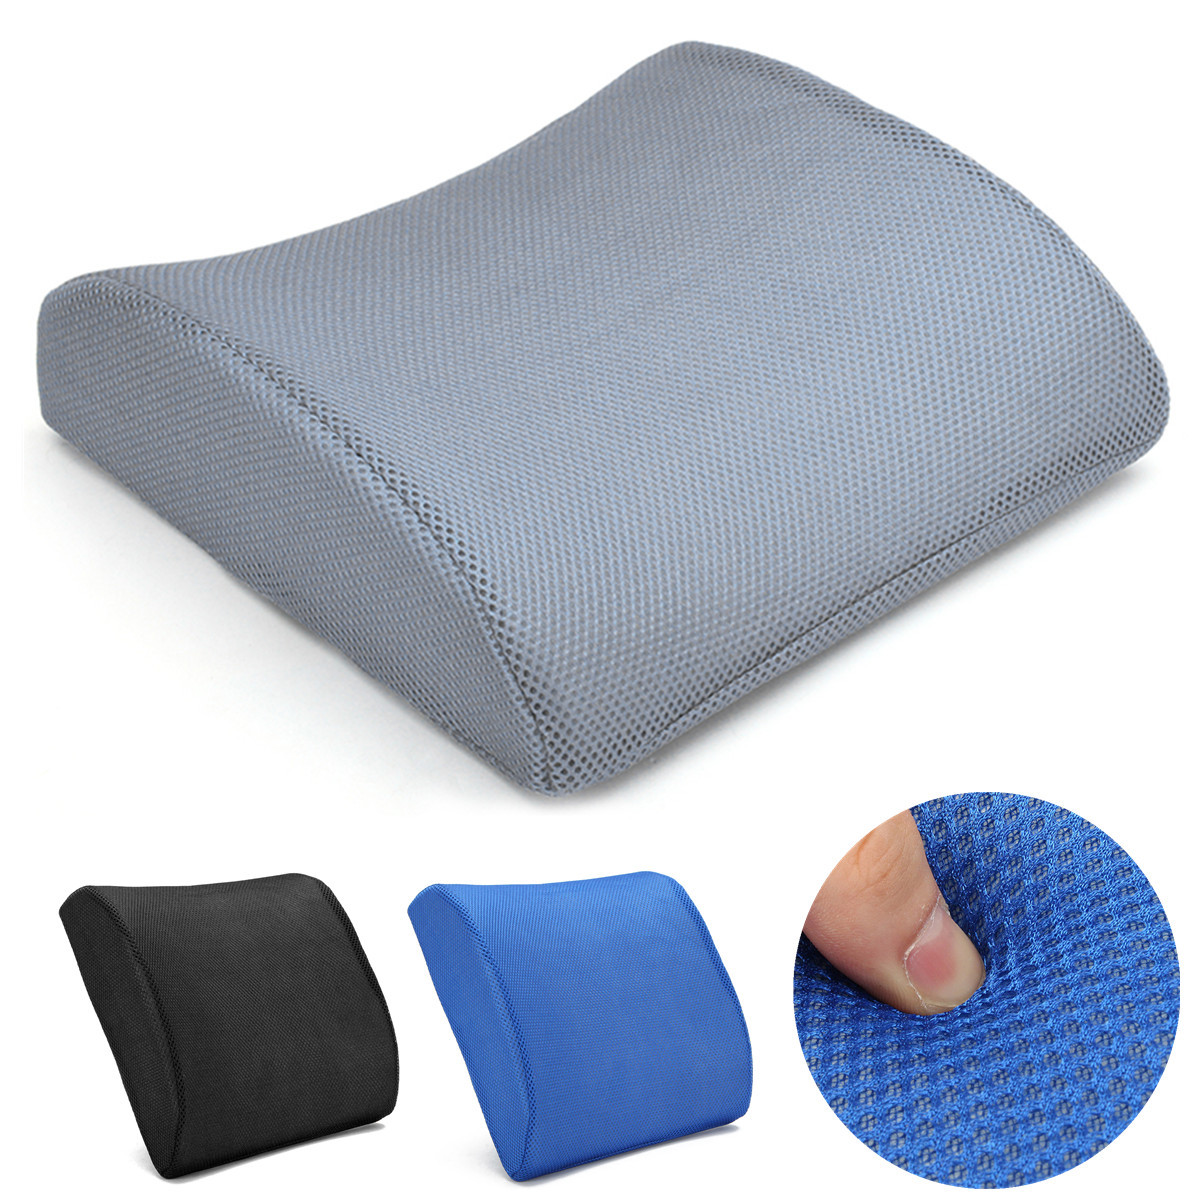 SIMSHION Memory Foam Car Seat Chair Lumbar Back Support Waist Cushion Neck Rest Pillow With 3D Breathable Mesh Cover Design for Lower Back Pain and Tightness Relief,Best for Office,Home Car